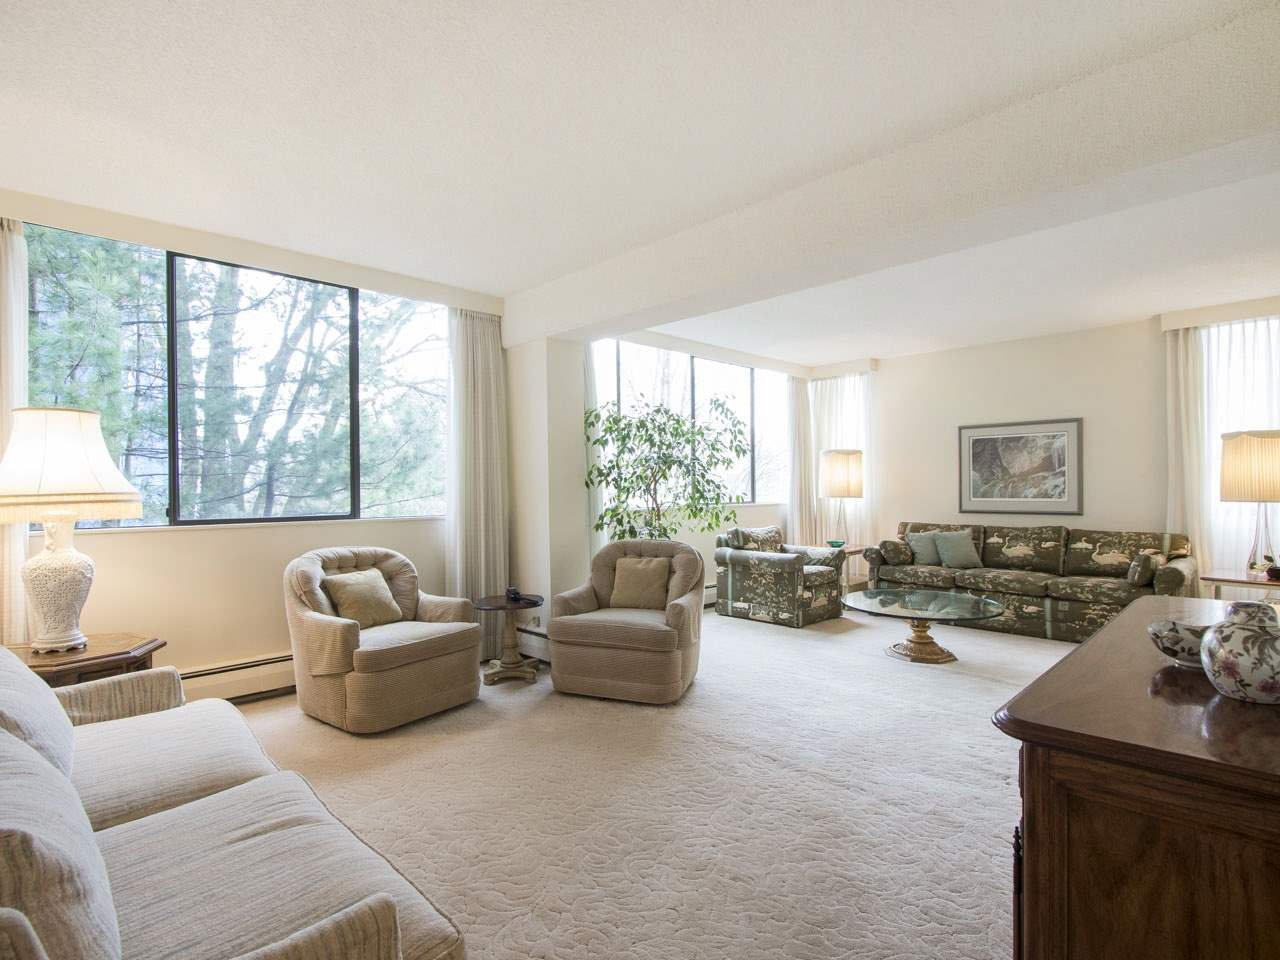 Main Photo: 301 1616 W 13TH AVENUE in Vancouver: Fairview VW Condo for sale (Vancouver West)  : MLS®# R2135445